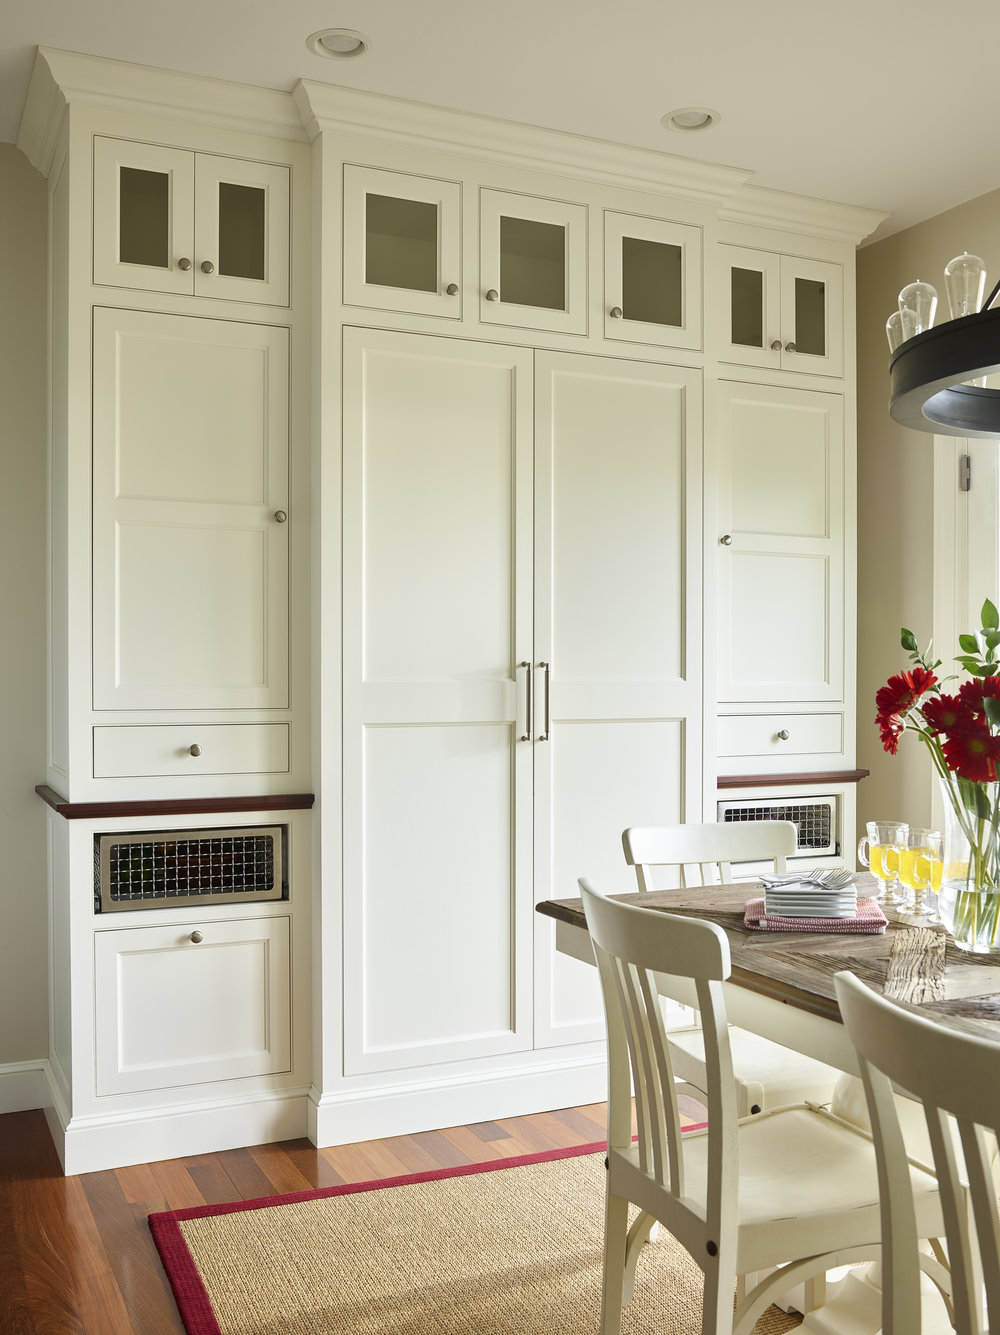 PinneyDesigns_RustCohasset_DiningCabinets_Final_SMALL.jpg